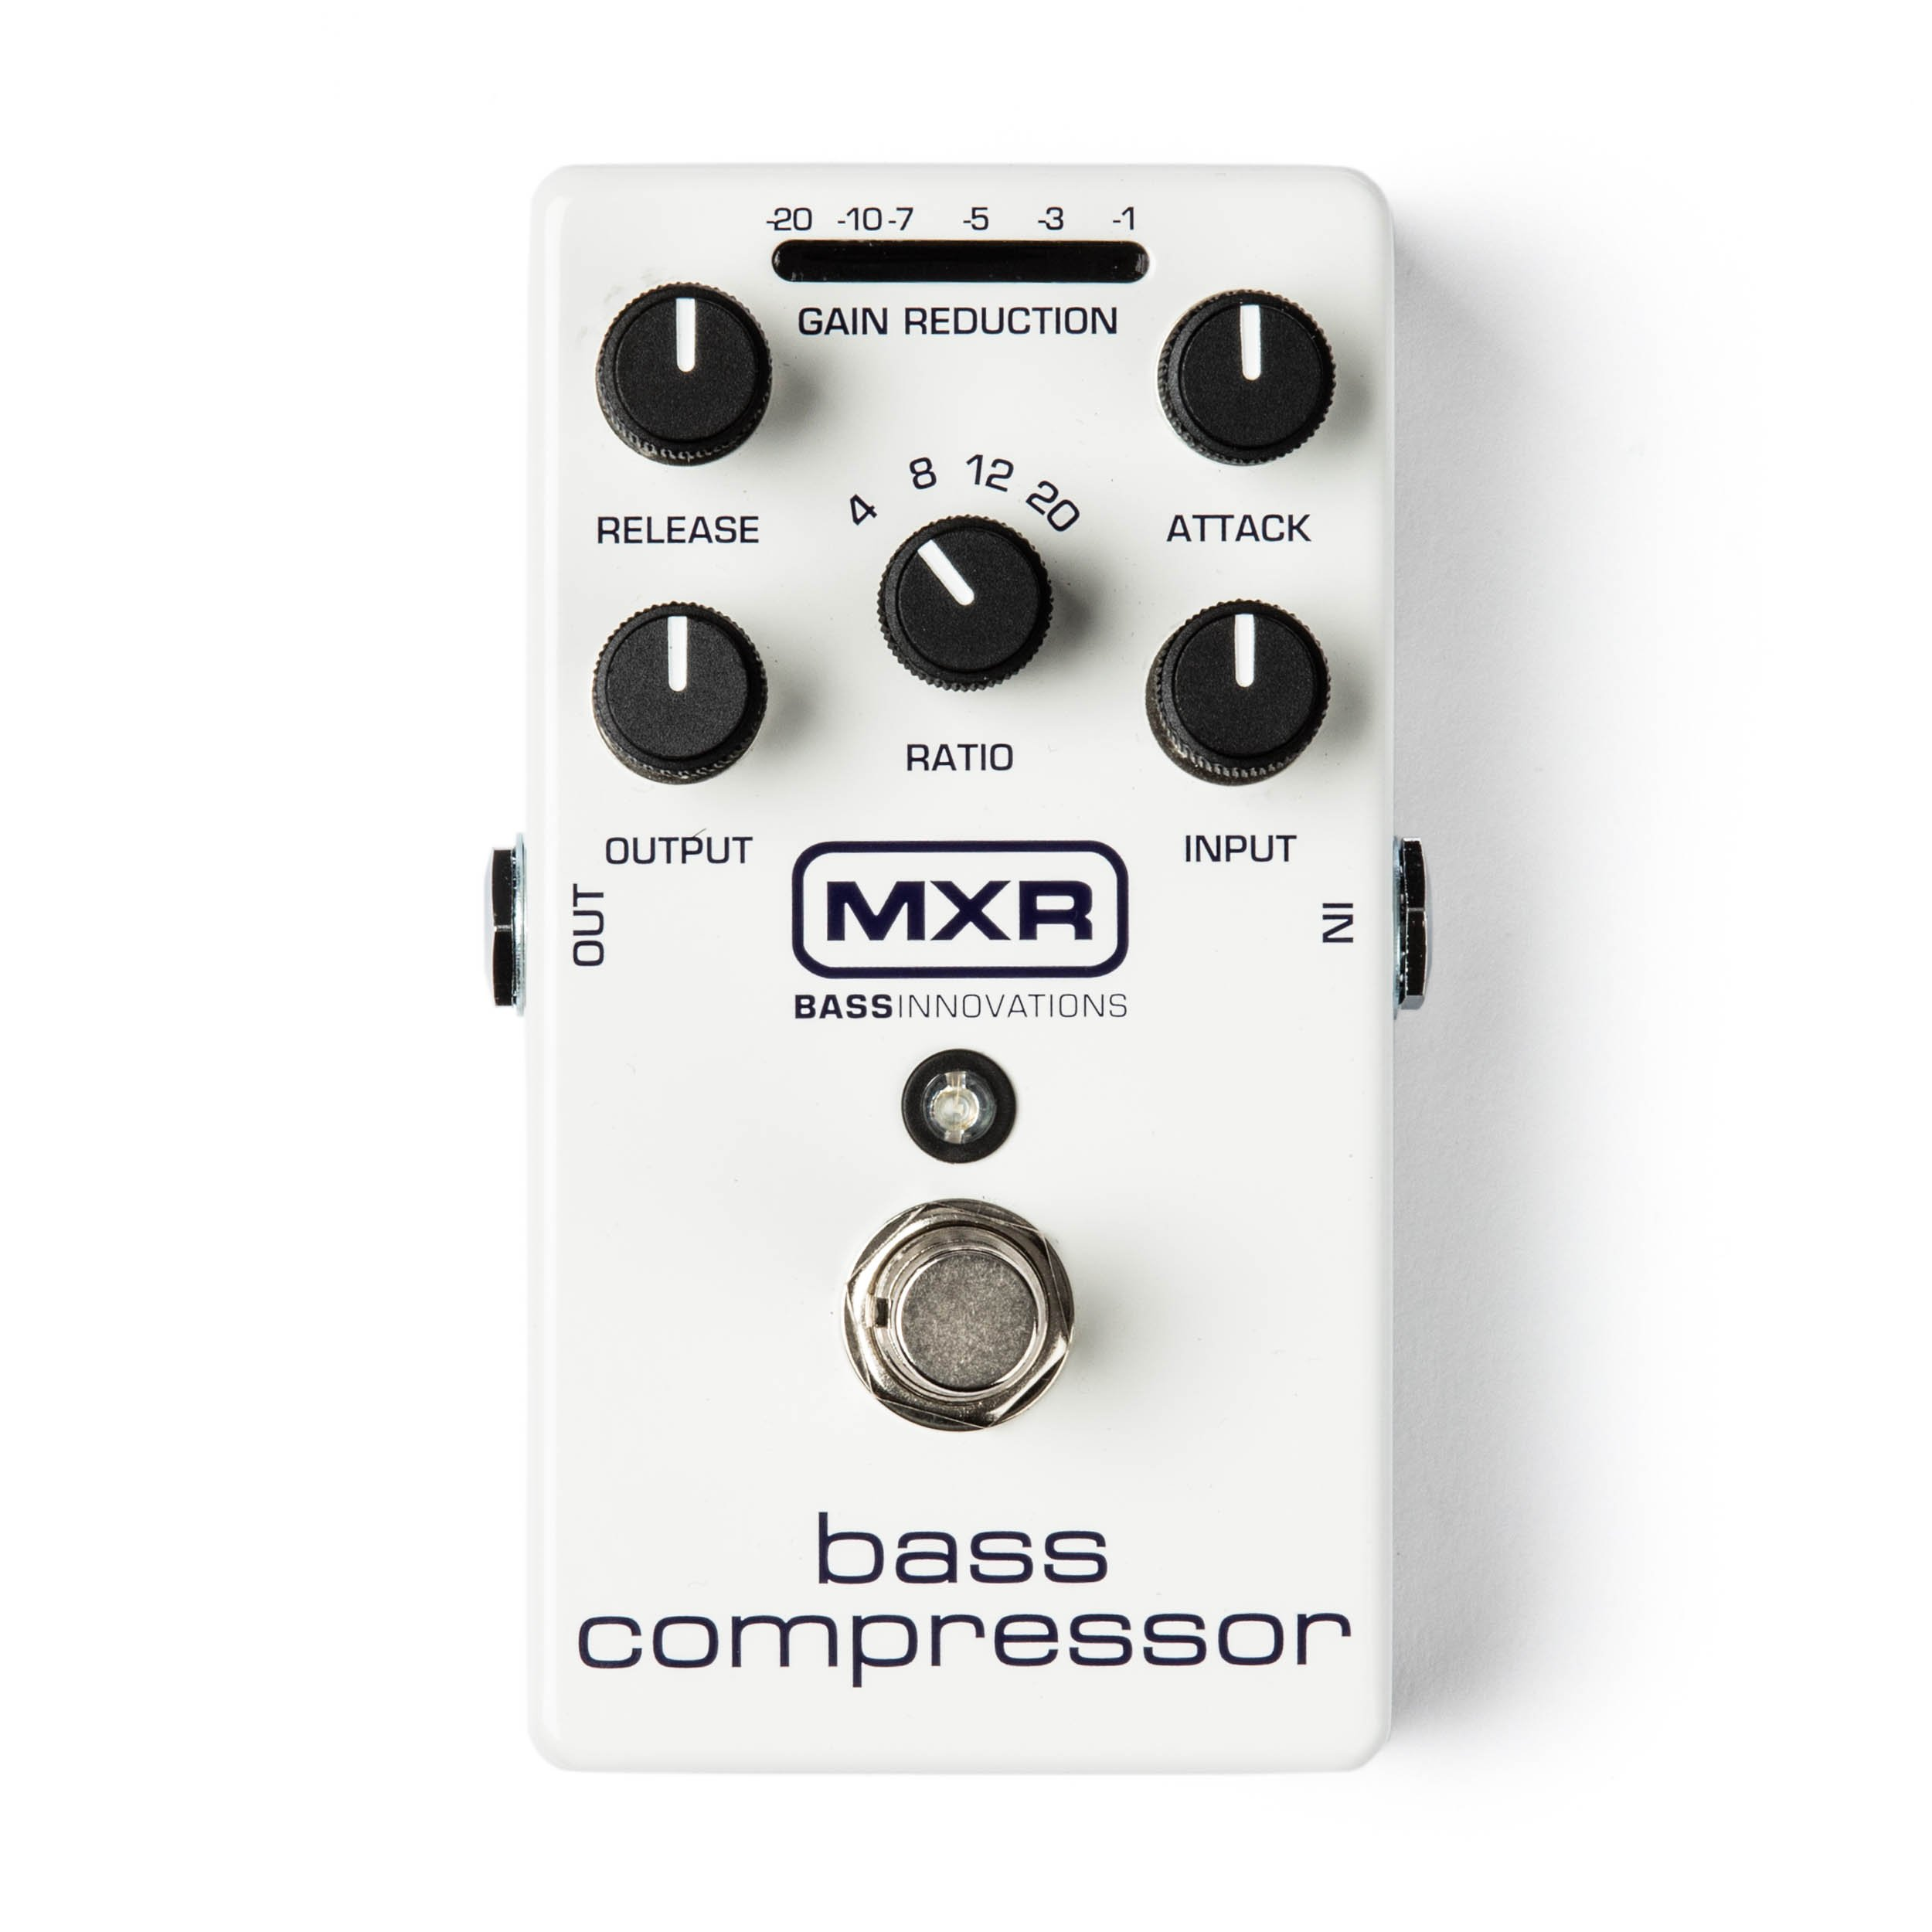 M87 MXR Bass Compressor + Power adapter and cables!